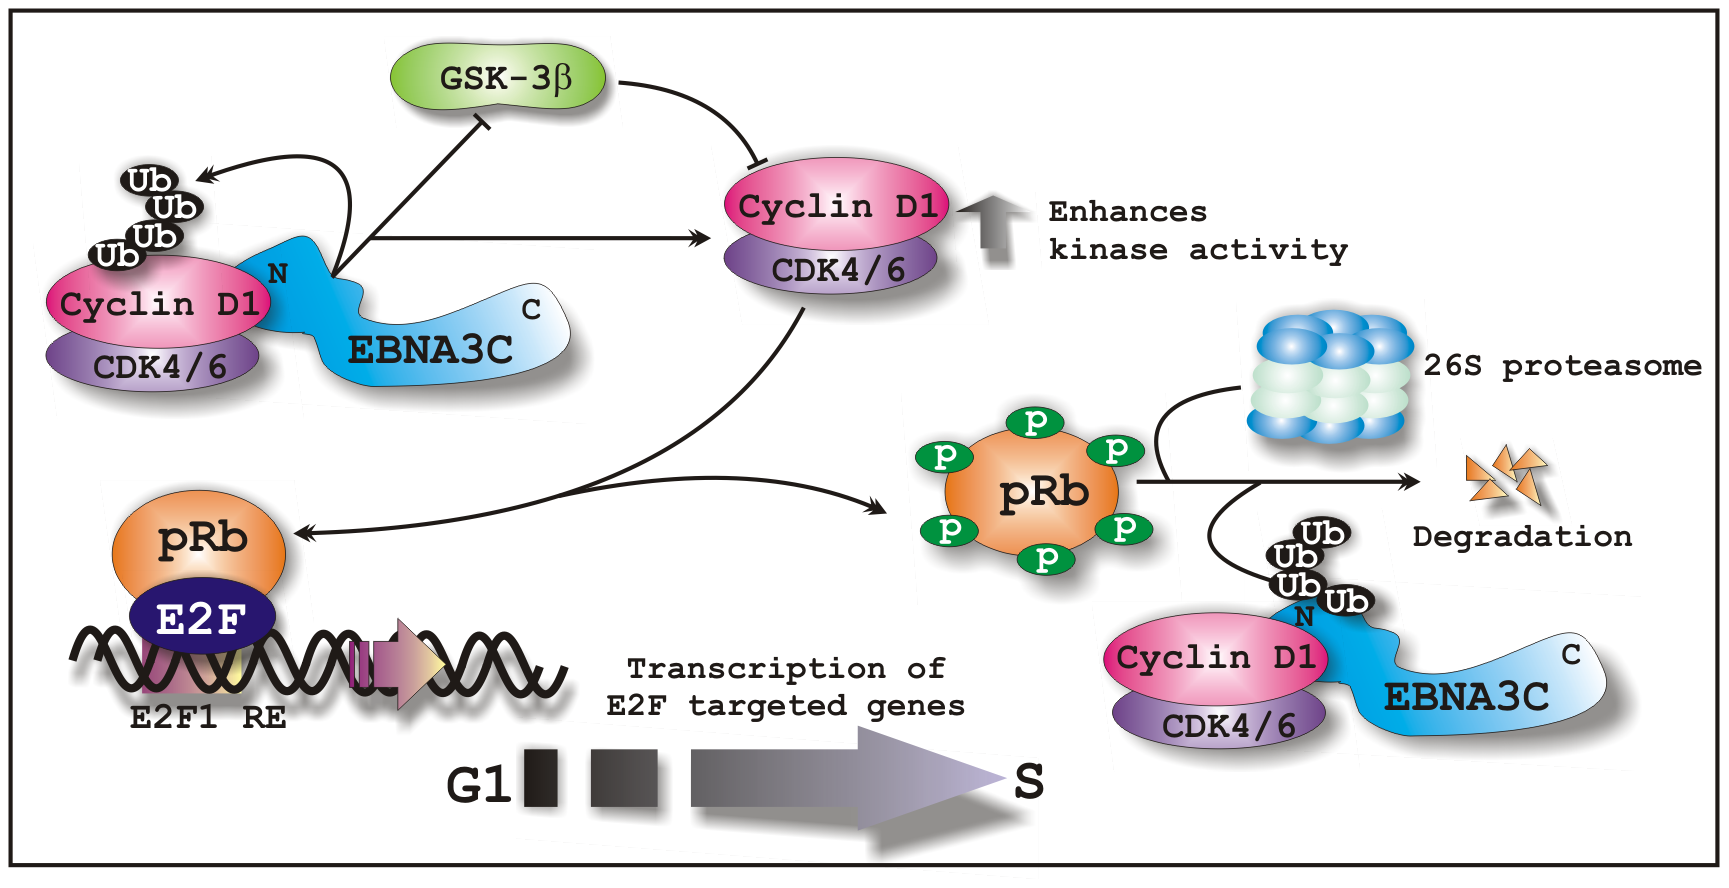 A schematic illustration of how EBNA3C regulates Cyclin D1 stability and functions to facilitate G1 to S phase transition in EBV positive cells.